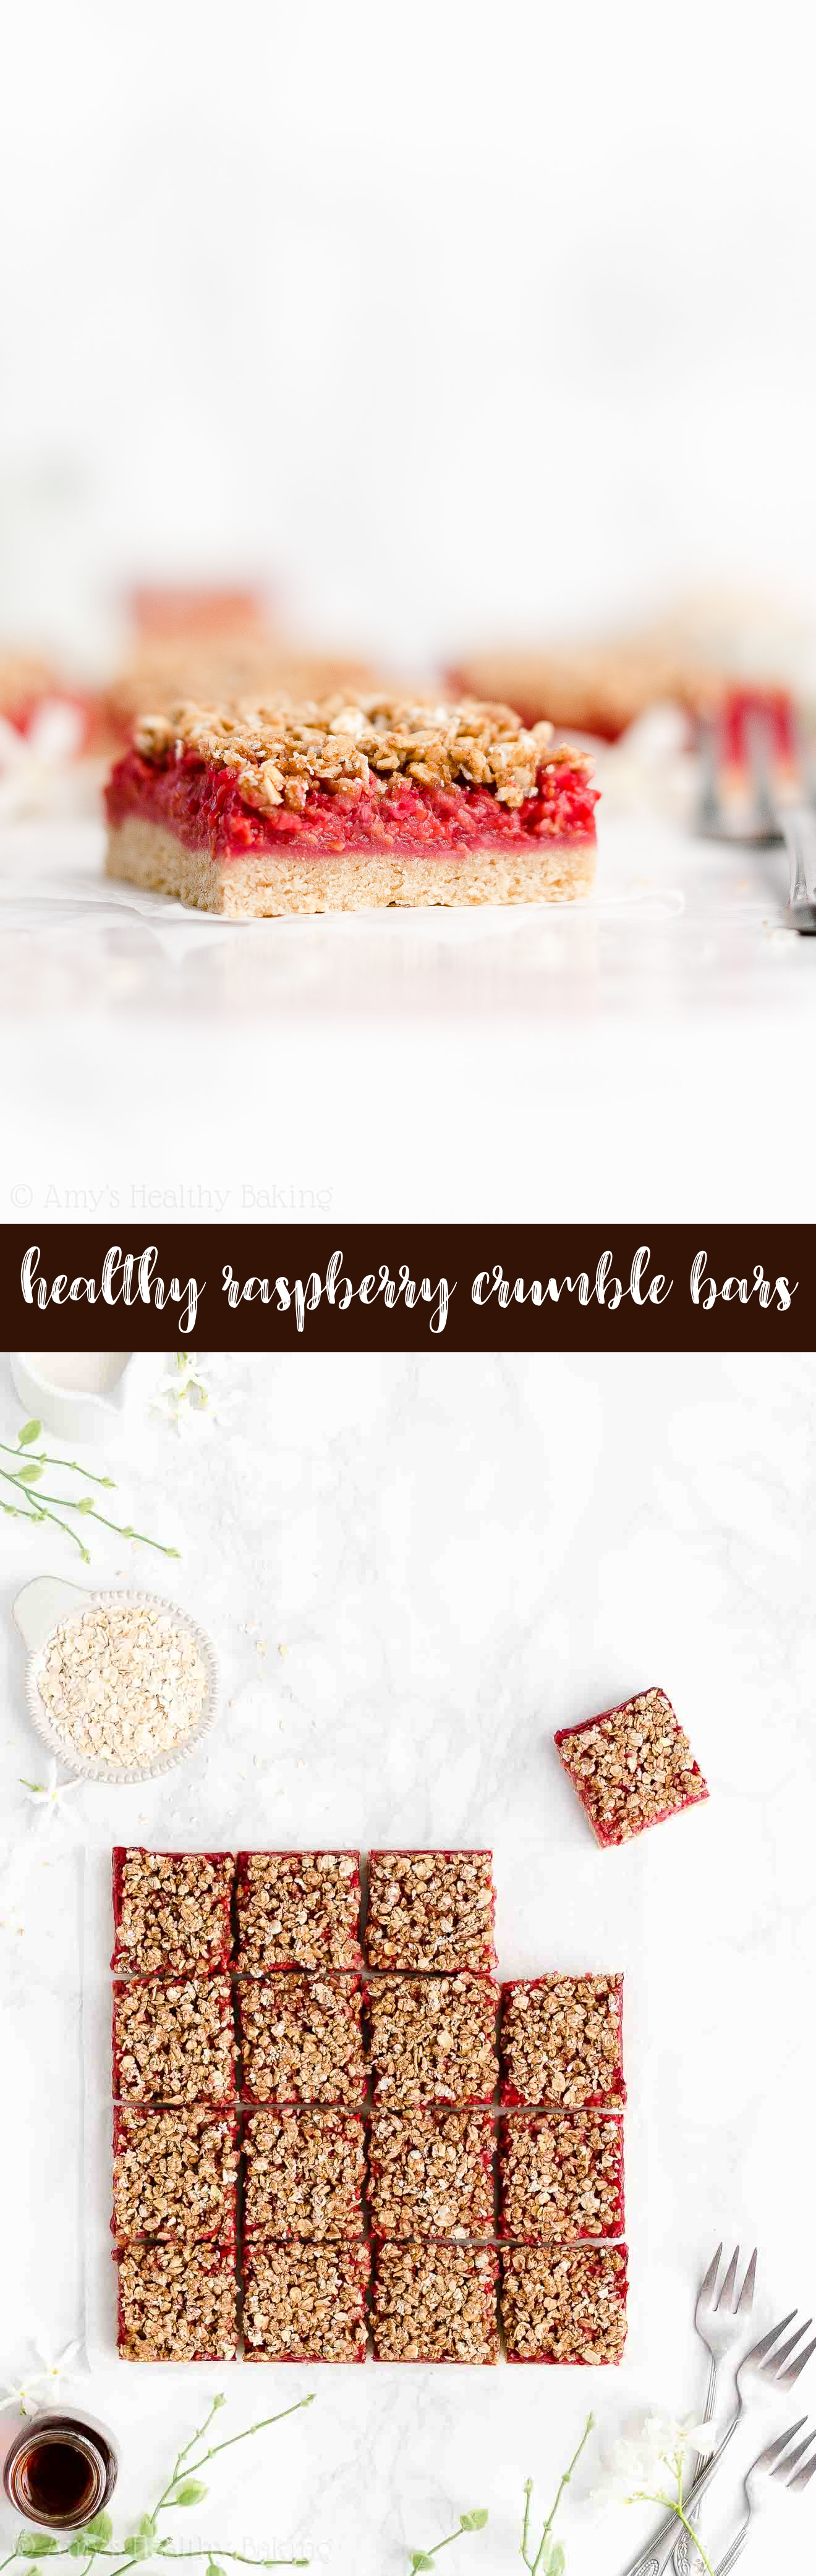 Best Ever Easy Healthy Gluten Free Vegan Fresh Raspberry Oat Crumble Bars